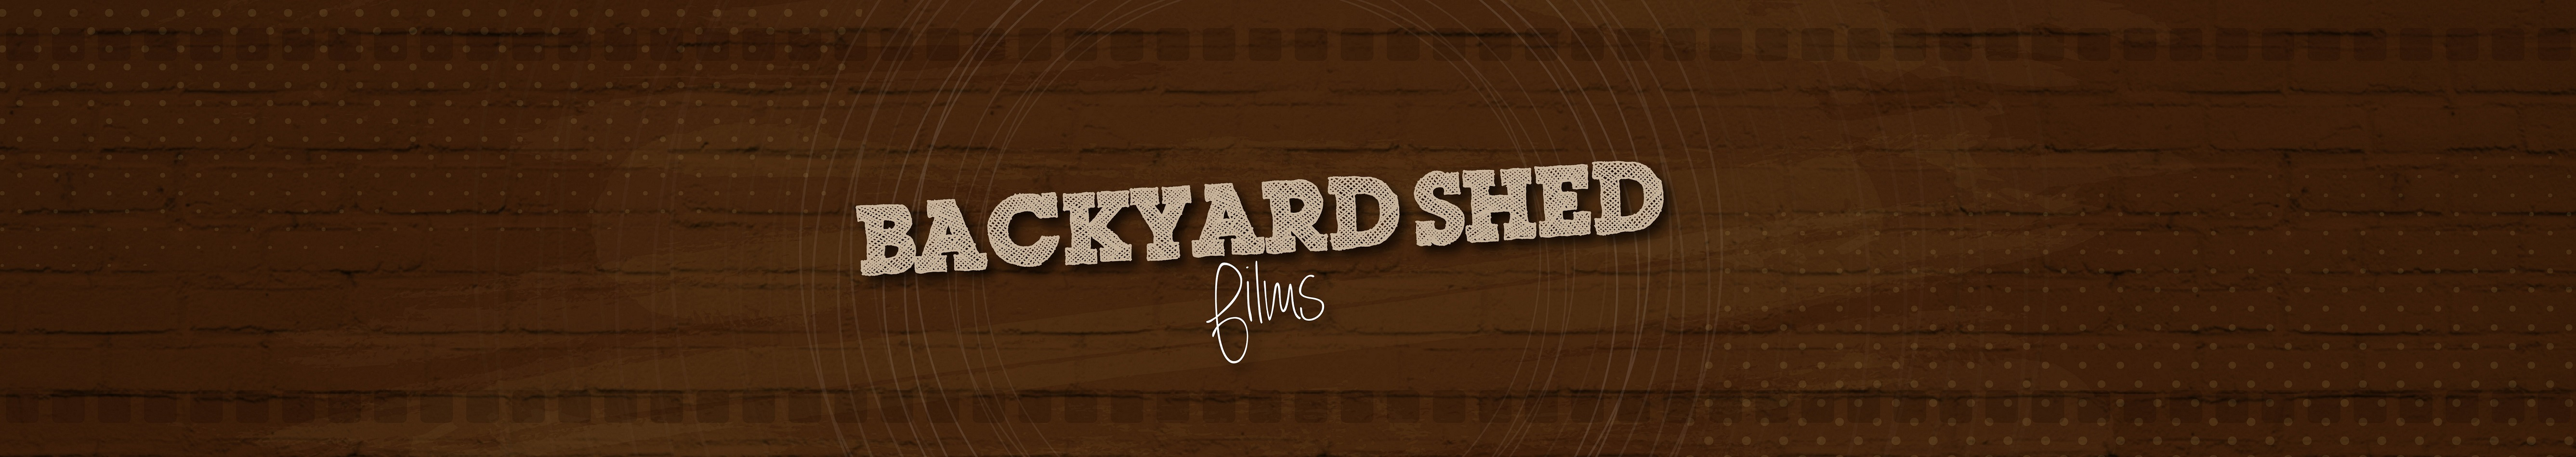 Videos | Backyard Shed Films